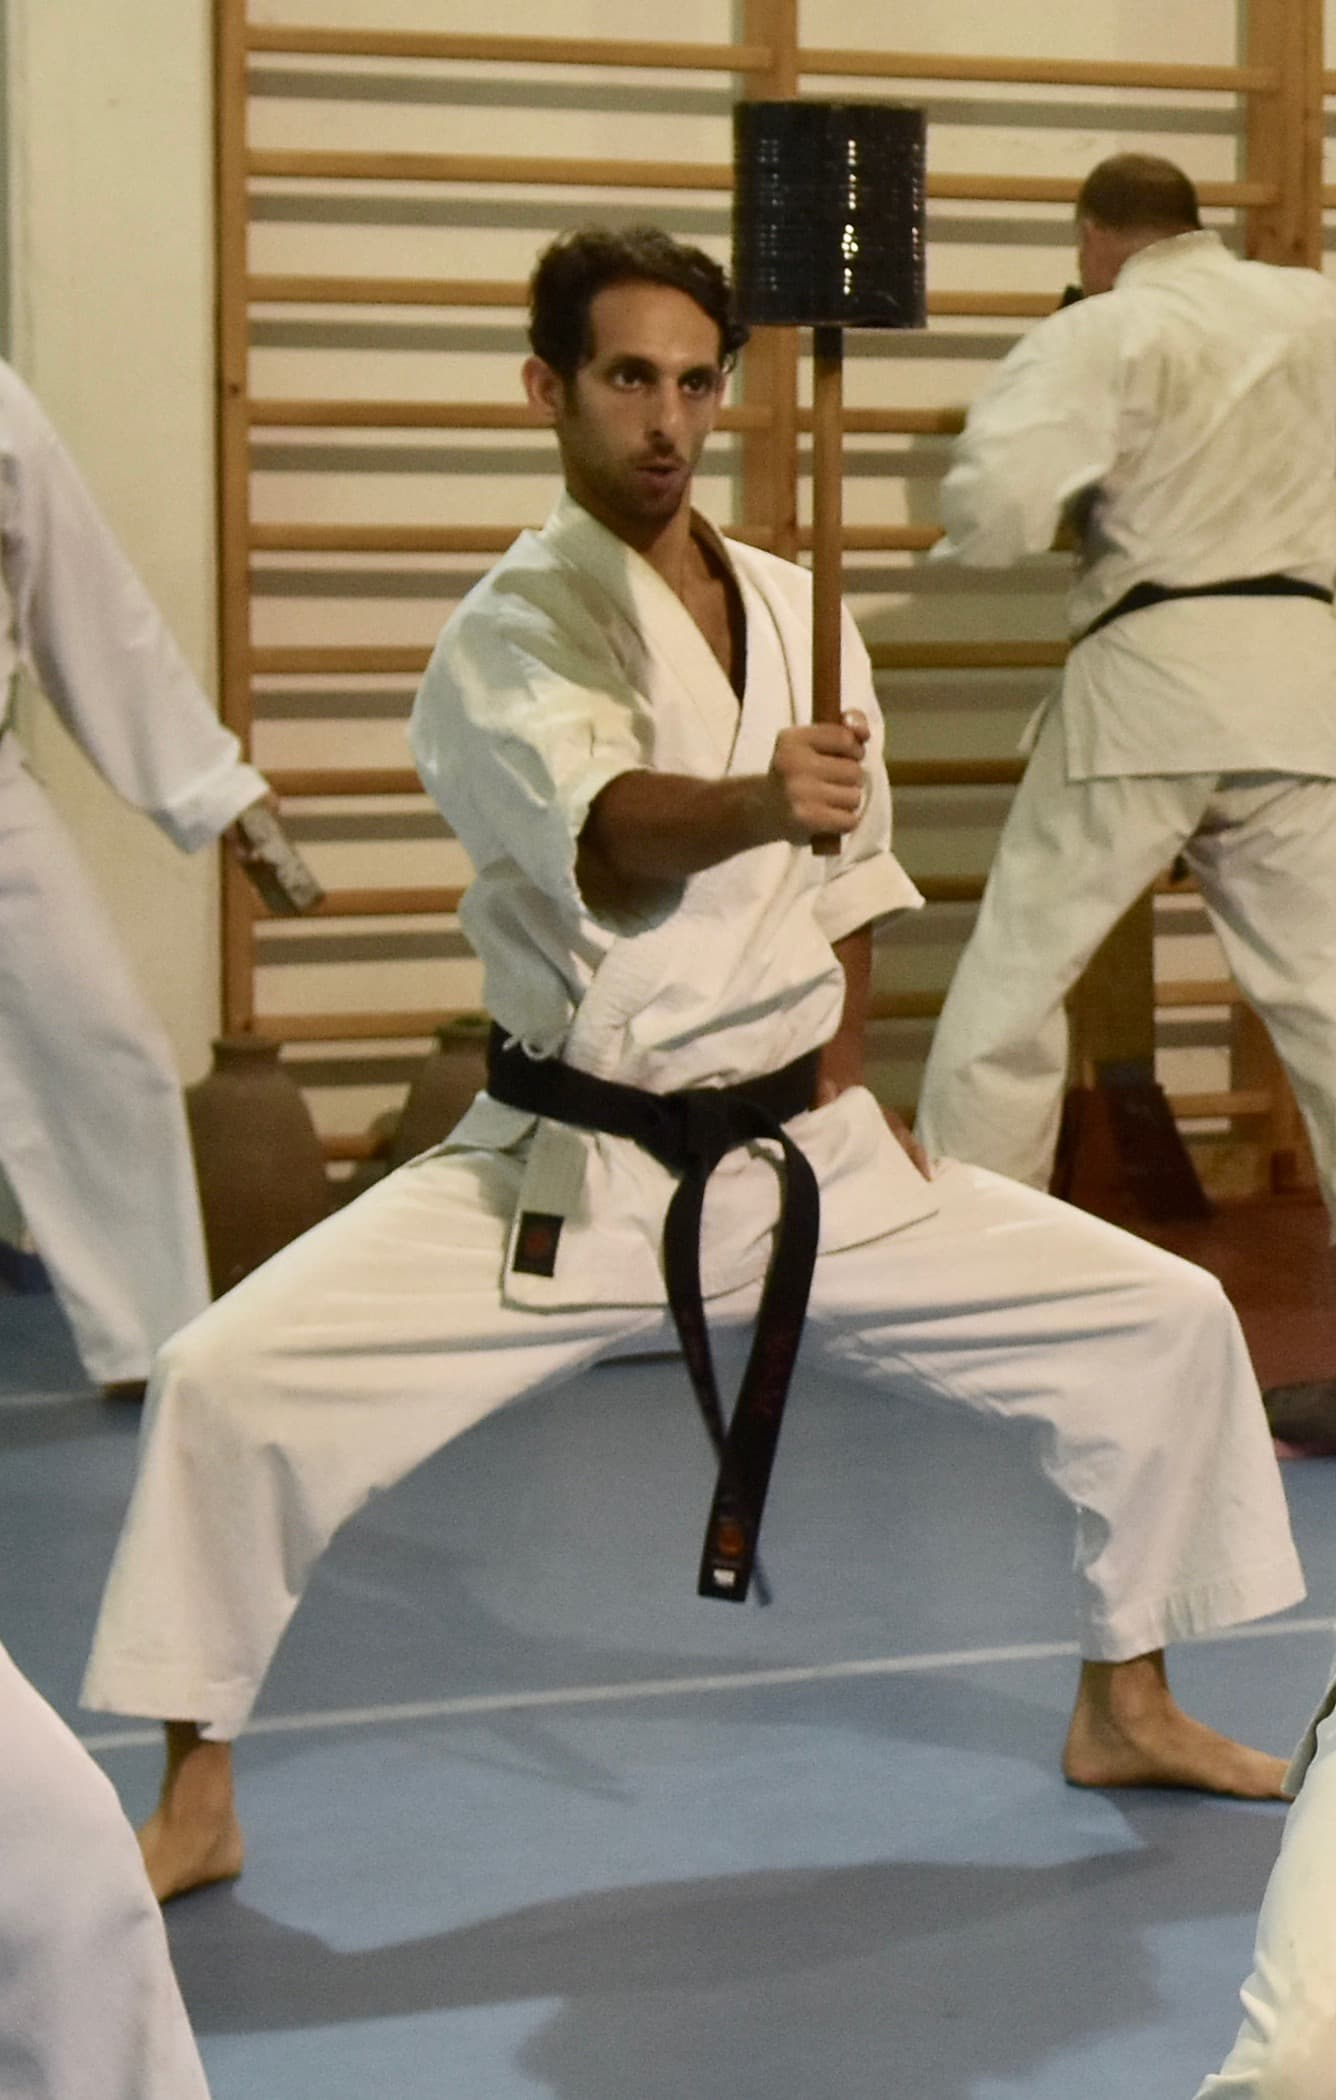 BOAZ TEREM - Black Belt 2nd Dan (training for 27 years)